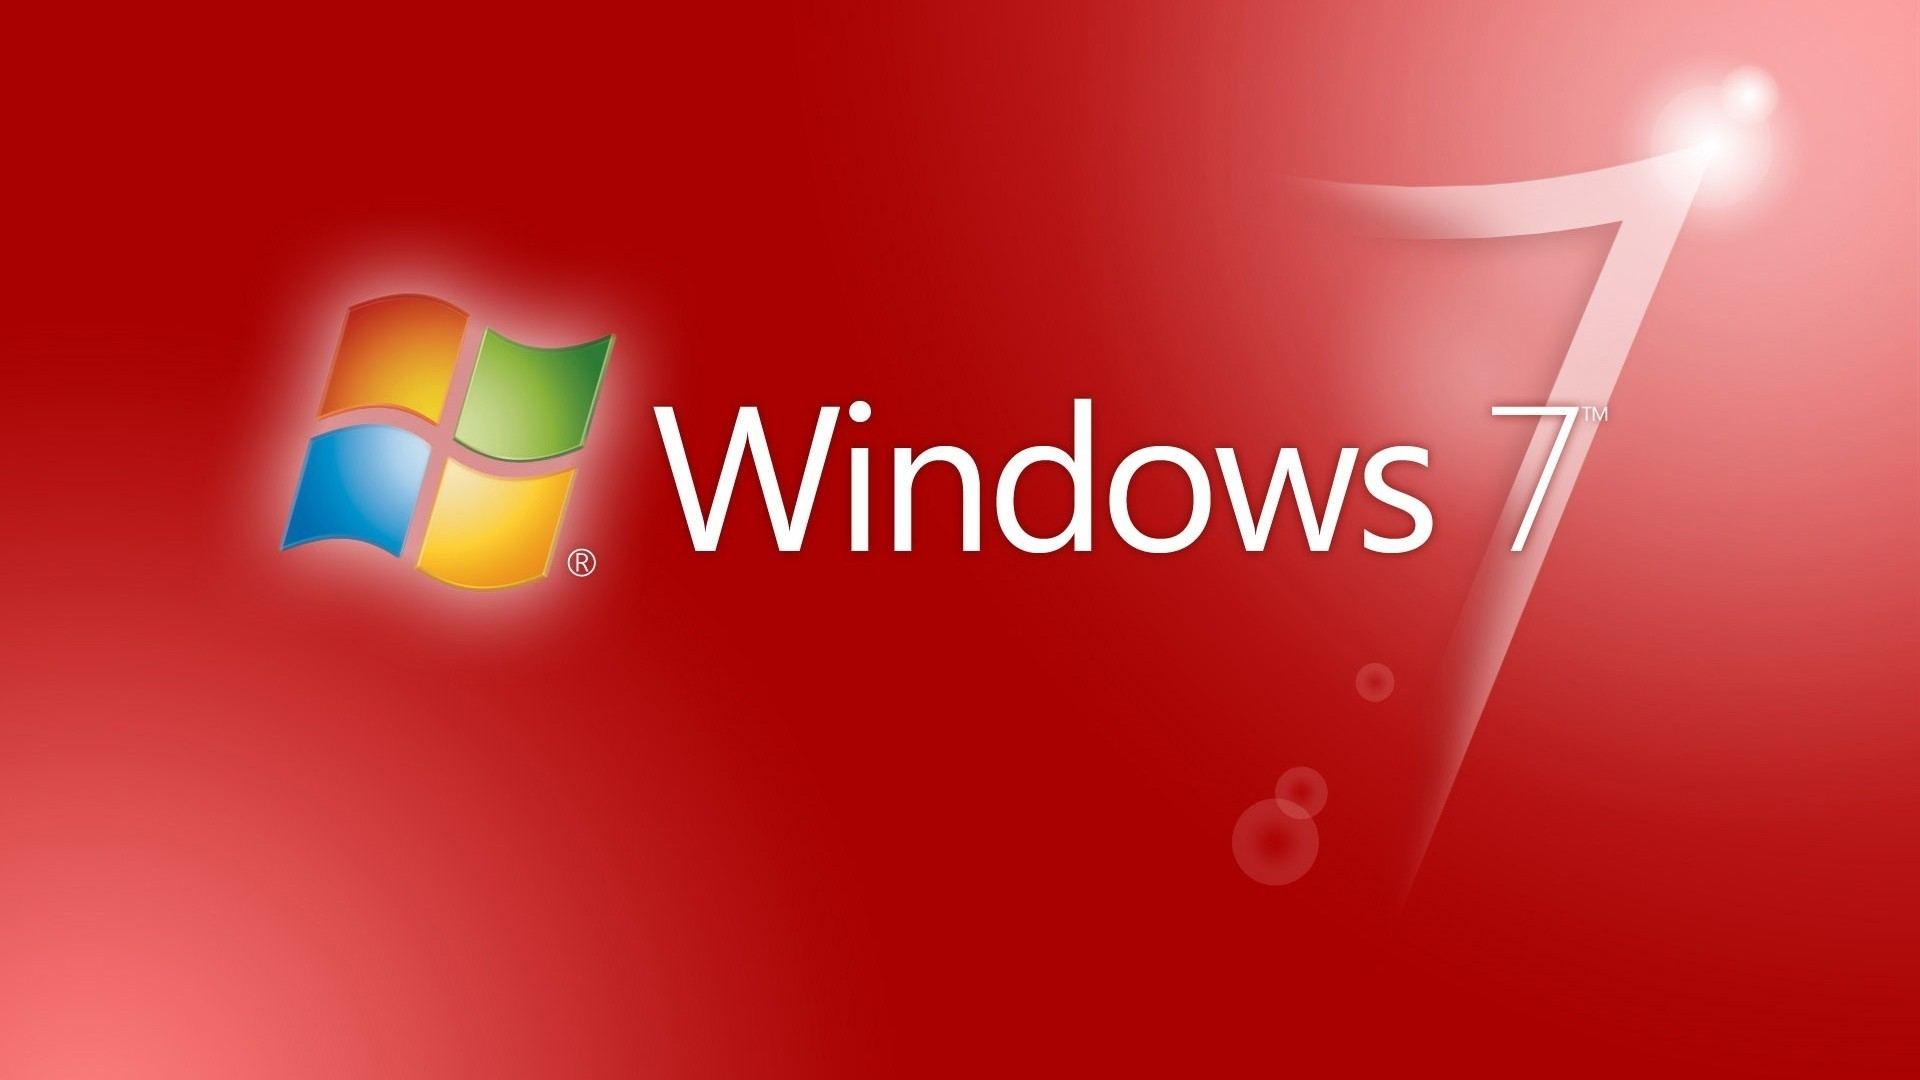 windows 7 microsoft HD Wallpaper